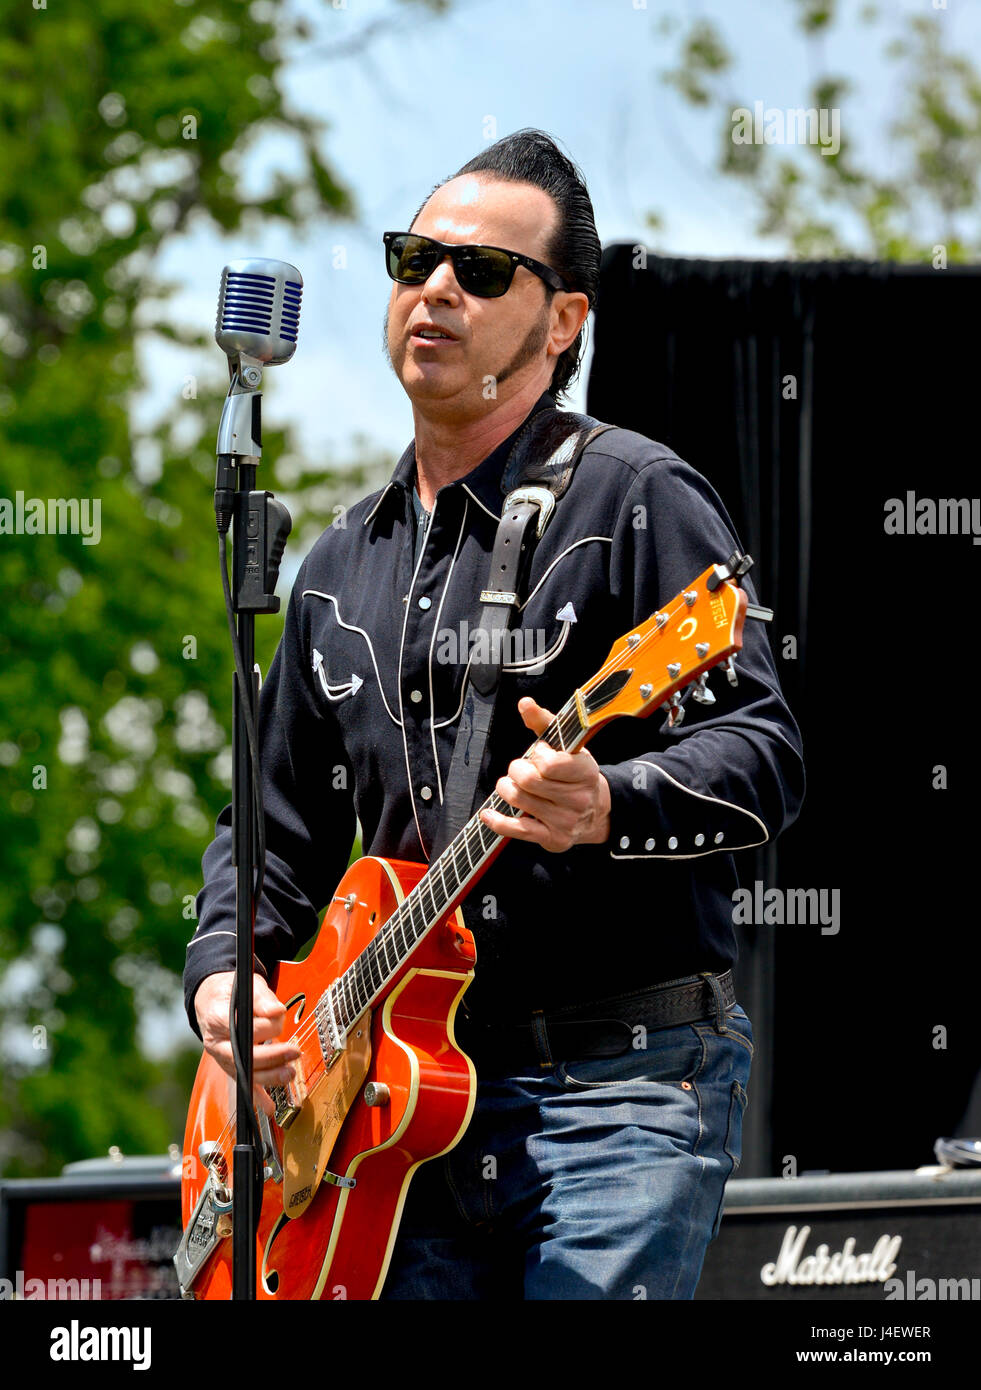 Encino California, May 7, 2017 - The Loveless/Ernie perform at Ride for Ronnie, 3rd Annual charity motorcycle ride - Stock Image